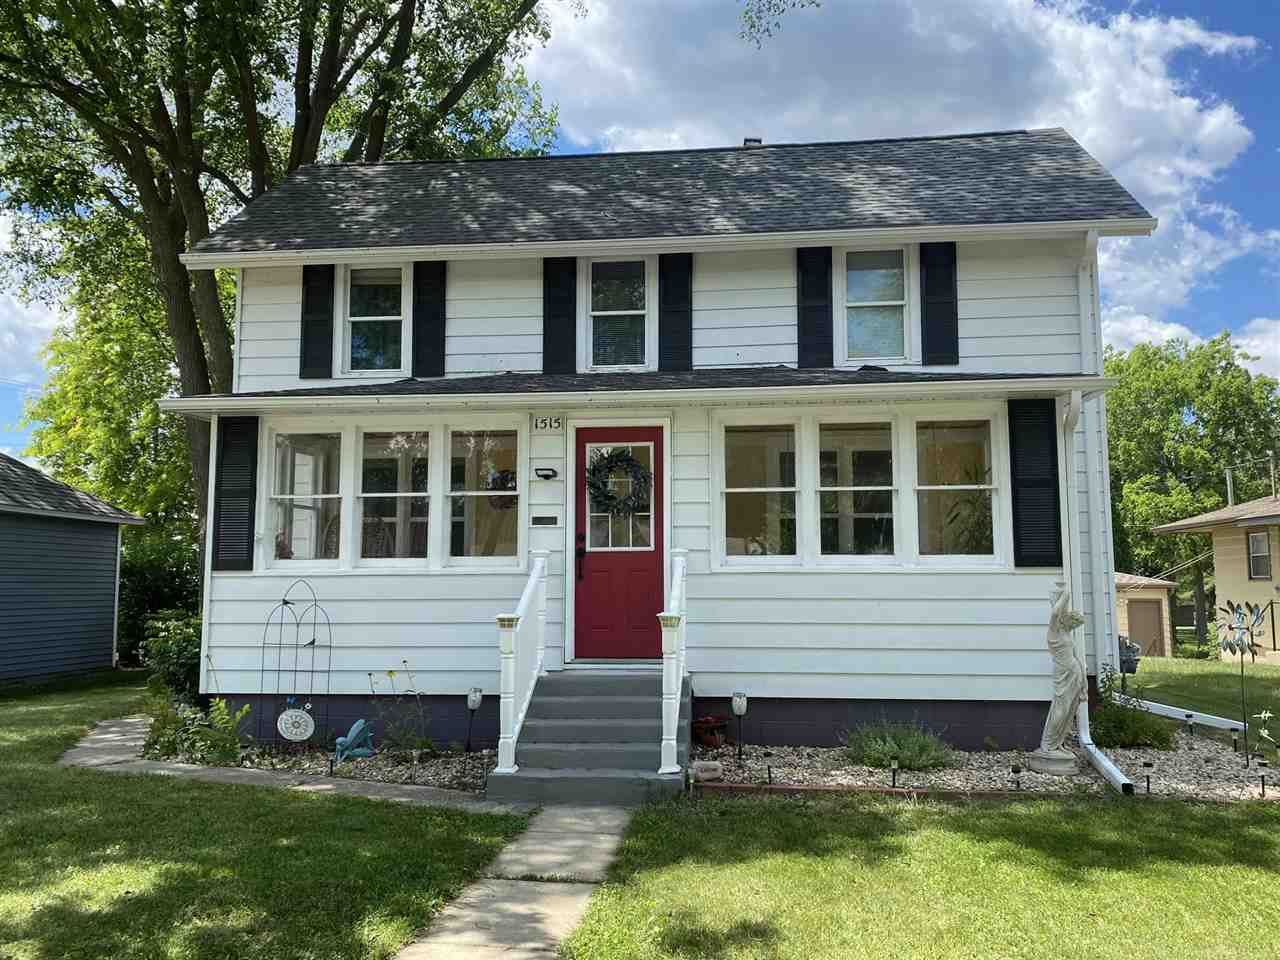 1515 Hollister Ave, Tomah, WI 54660 - #: 1911851